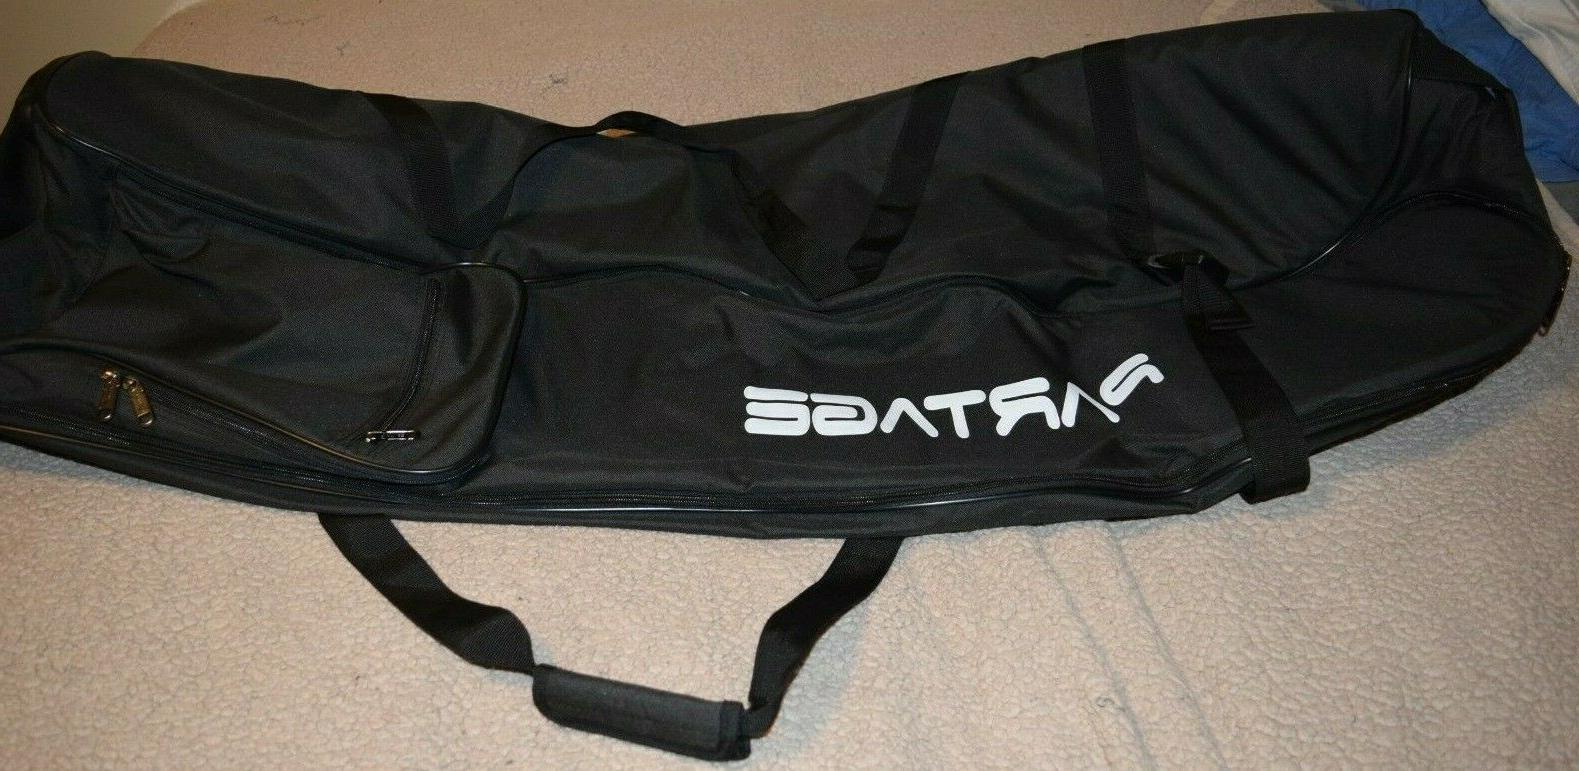 black golf travel bag for airlines new